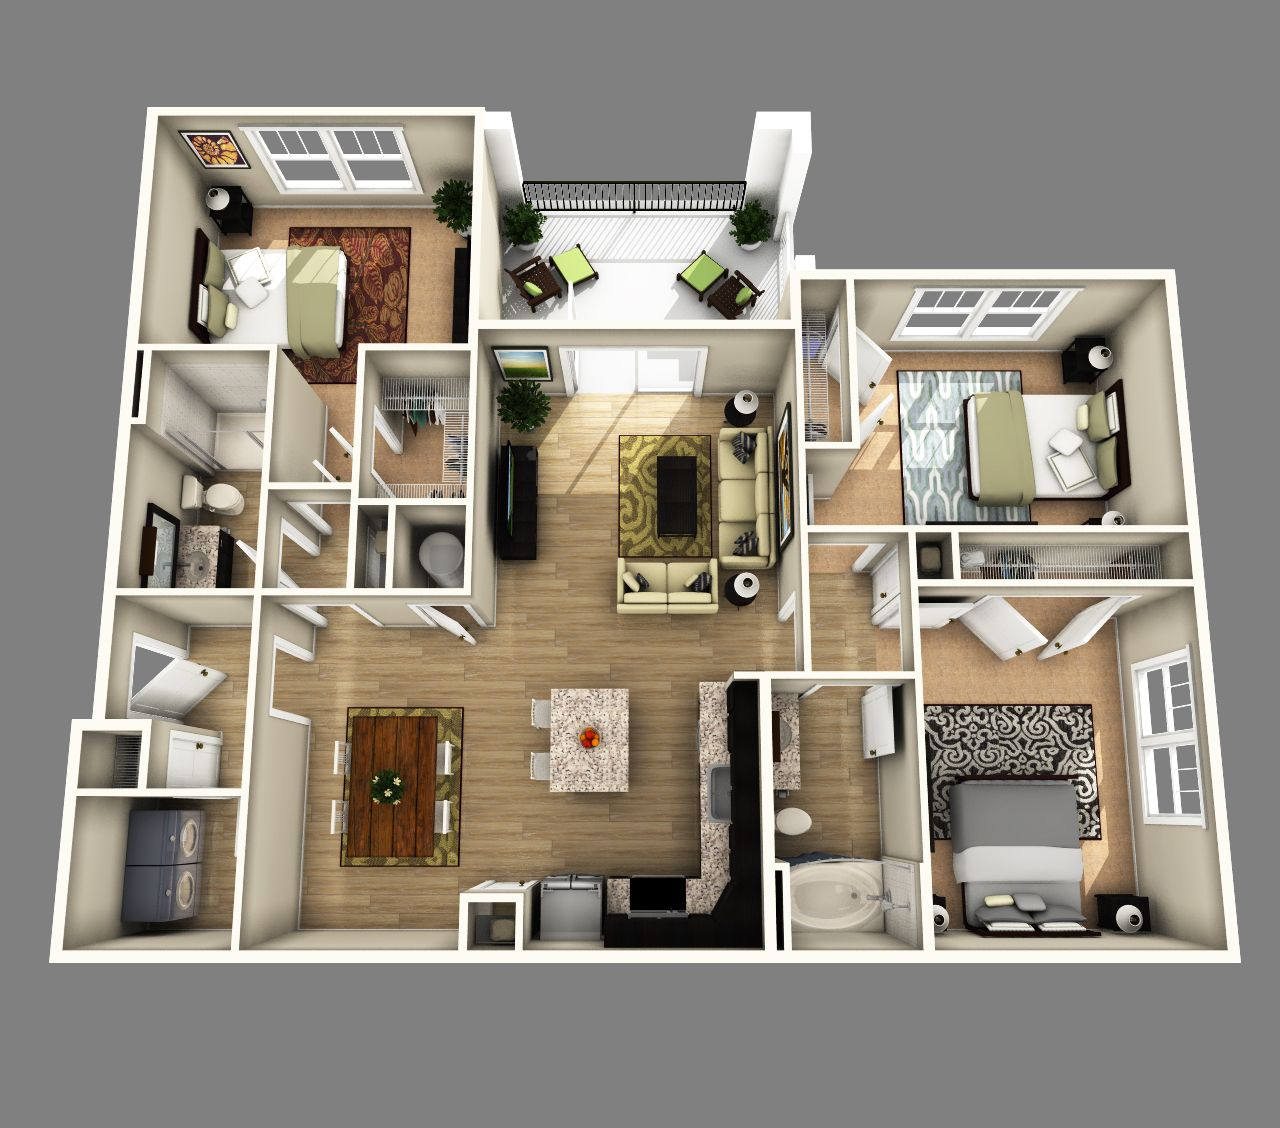 Home Design Ideas Floor Plans: Http://www.designbvild.com/4350/3